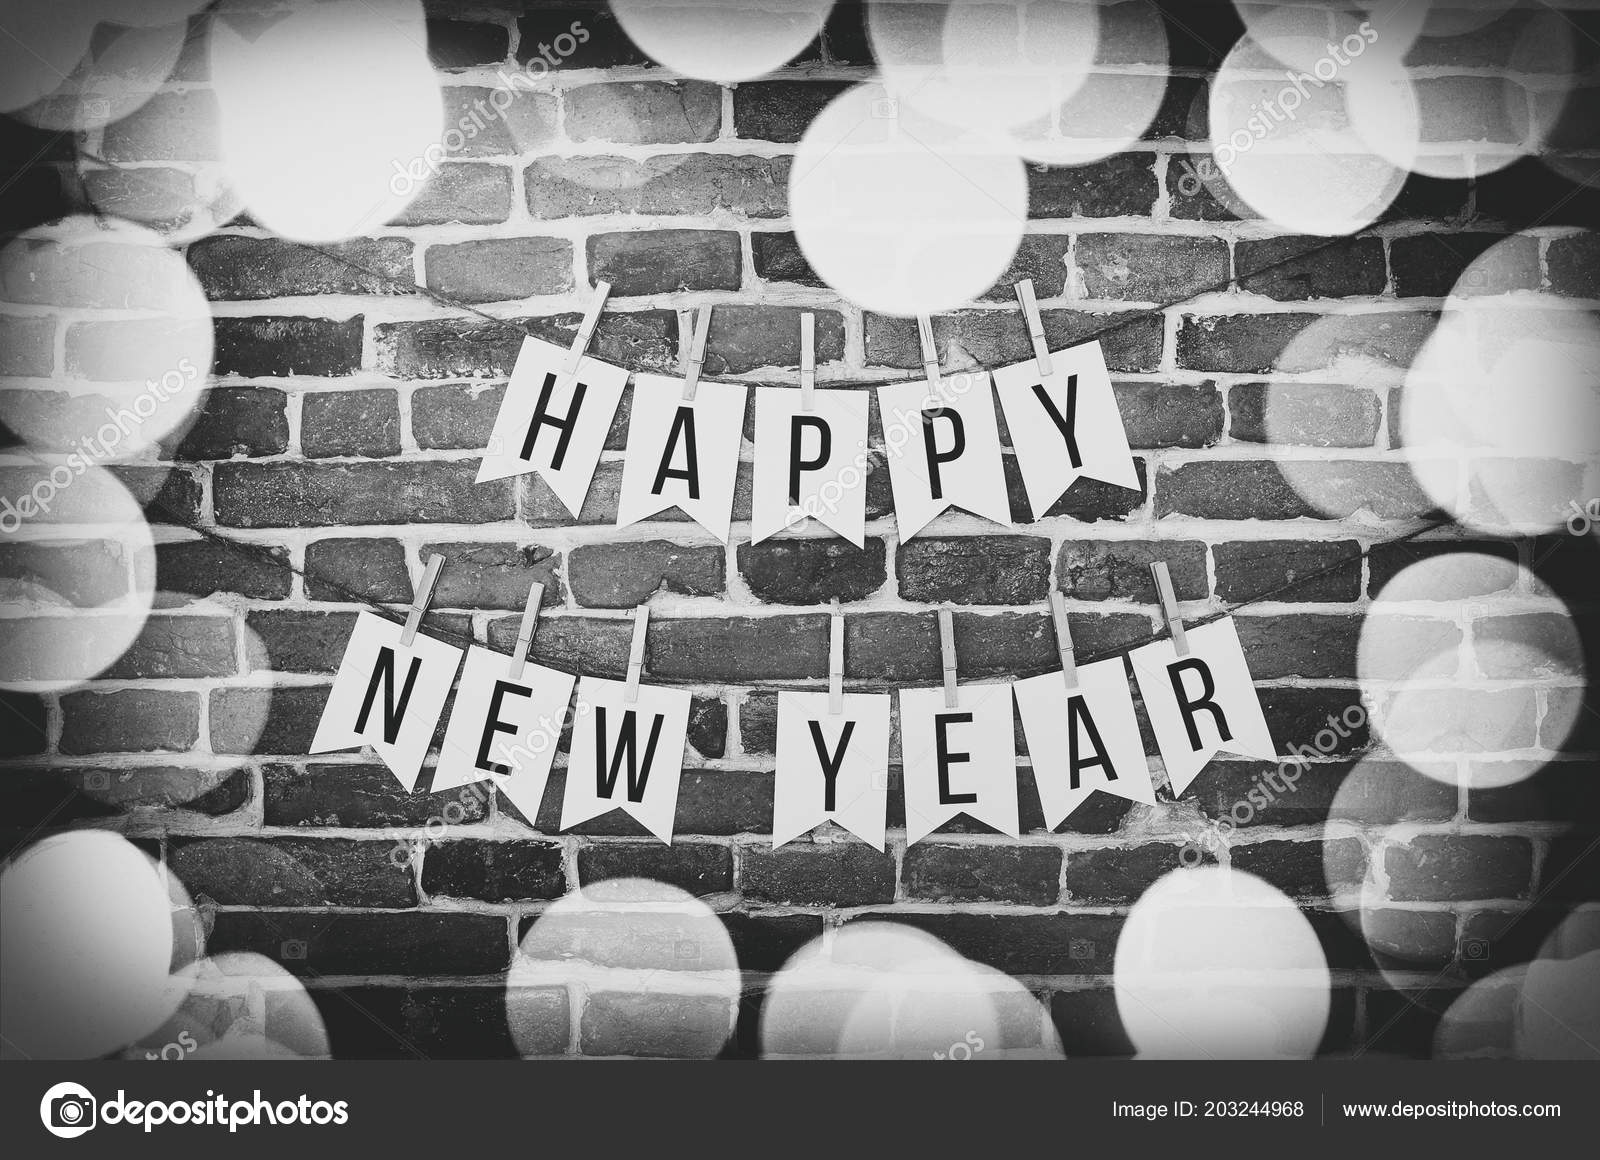 black and white happy new year text lettering paper card homemade flag garland with blurred lights border decoration on aged retro brick wall background